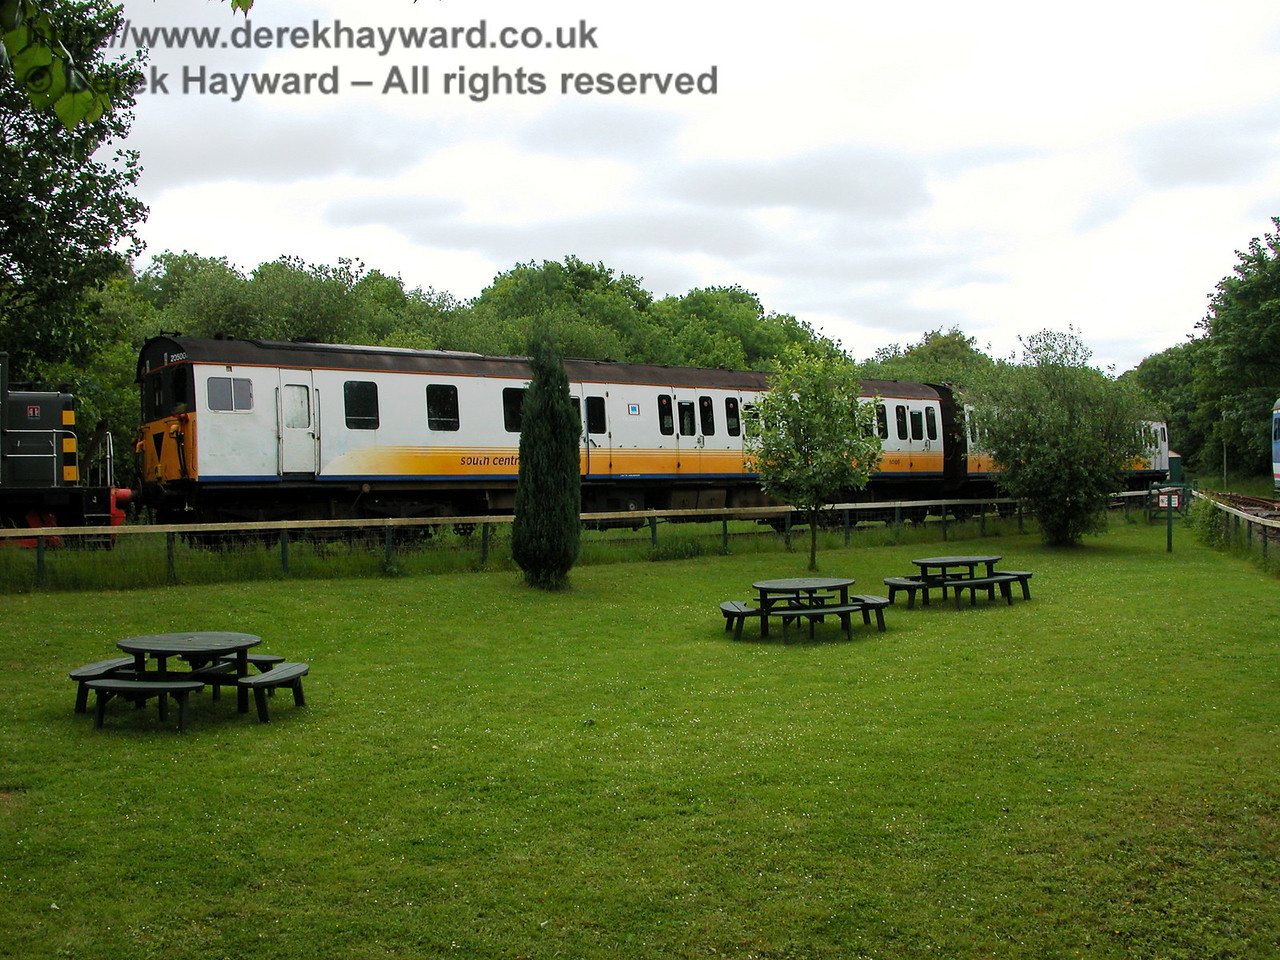 Shepherdswell sidings viewed across the picnic area in 2005.  Thumper 205001 is in the siding in South Central livery.  06.06.2005